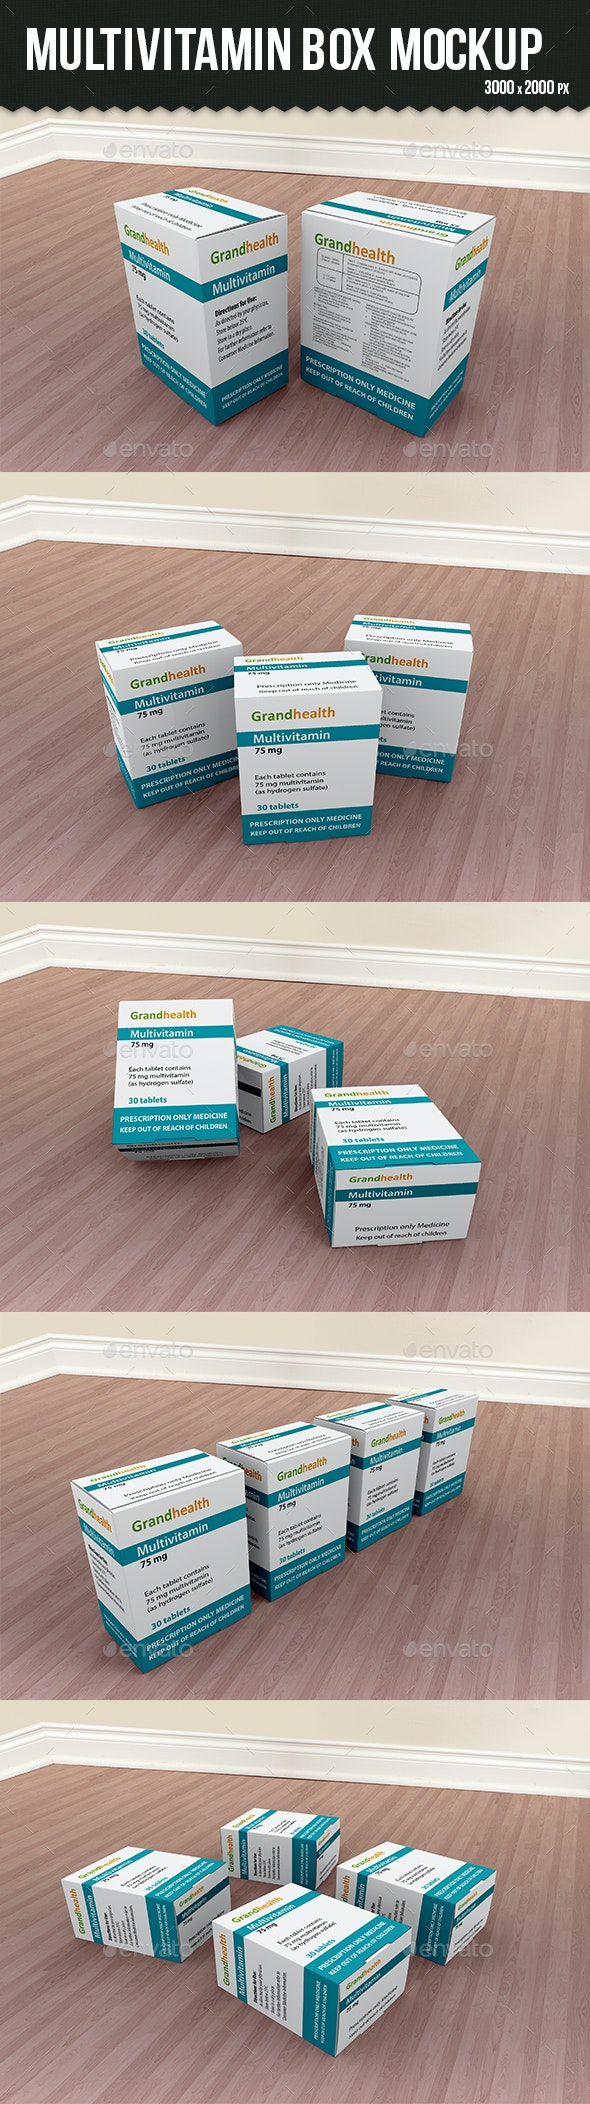 Multivitamin Box Mockup - Packaging Product Mock-Ups